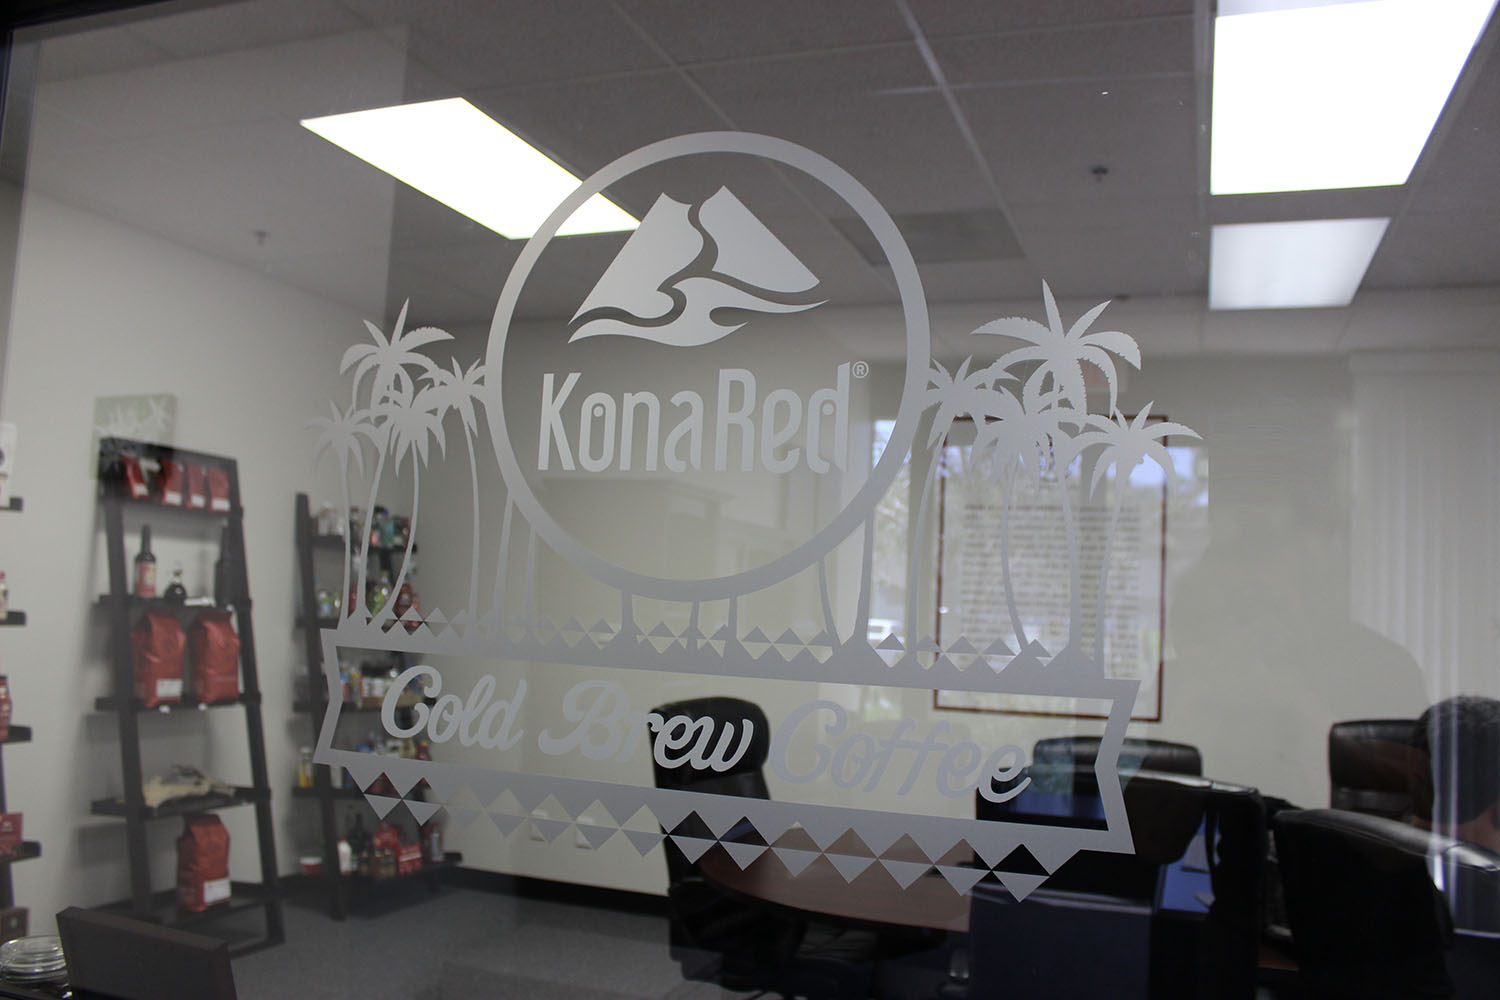 View more etched glass vinyl decals